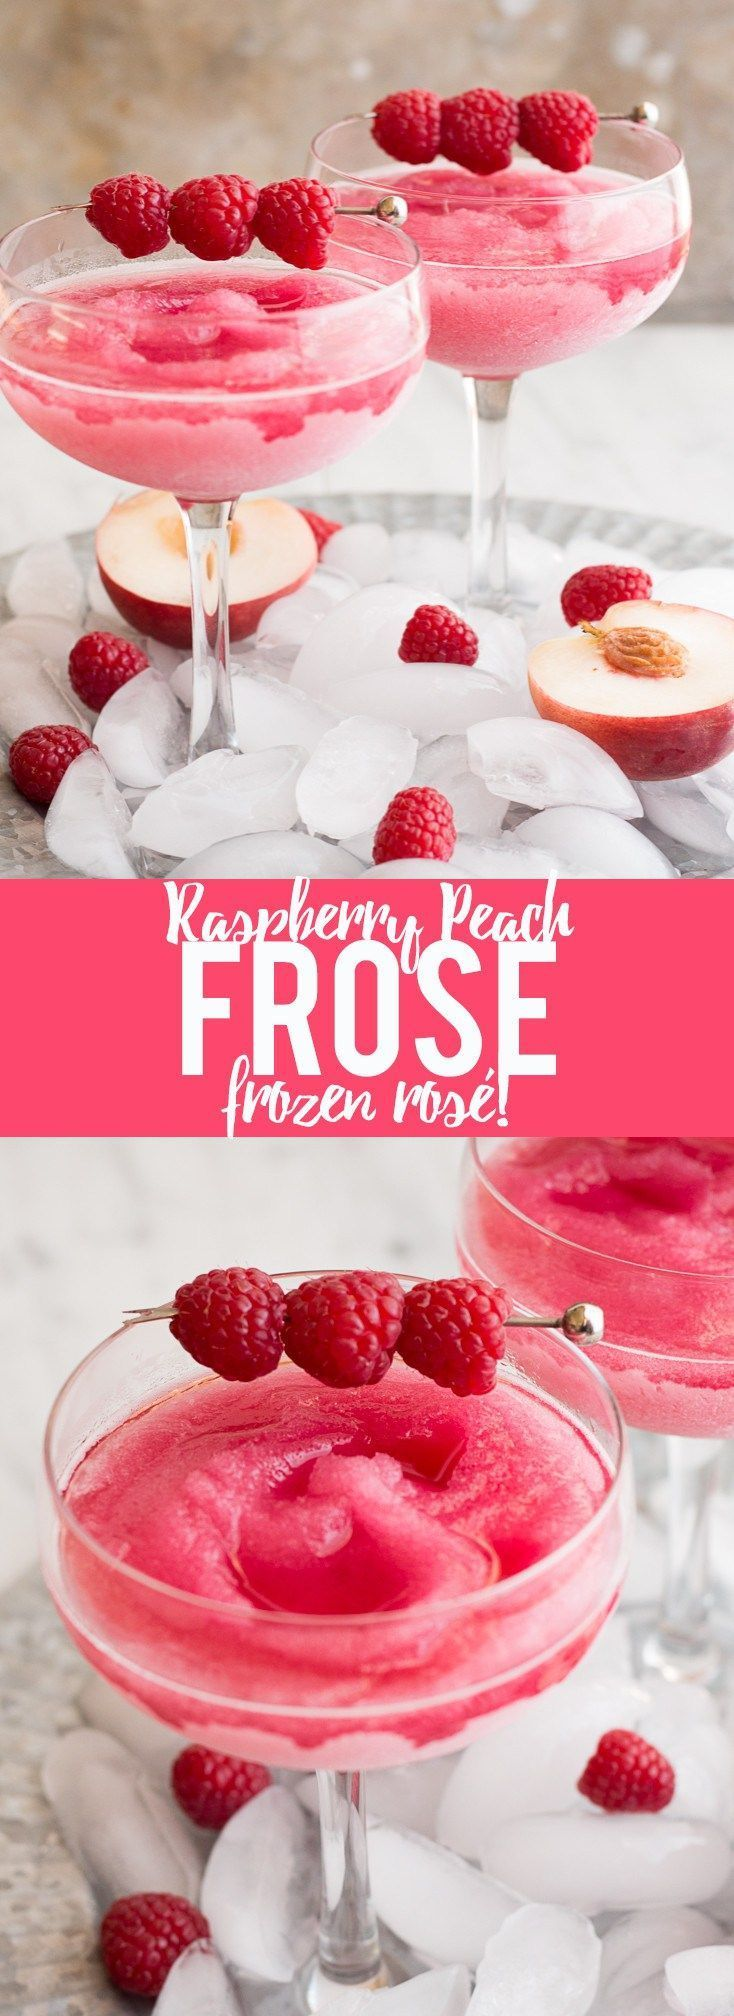 """Your summer drink dreams came true! Raspberry Peach Fros (Frozen ros) is a frozen ros blended into a frosty pink drink that will keep you cool while you say """"Yes way ros!"""""""